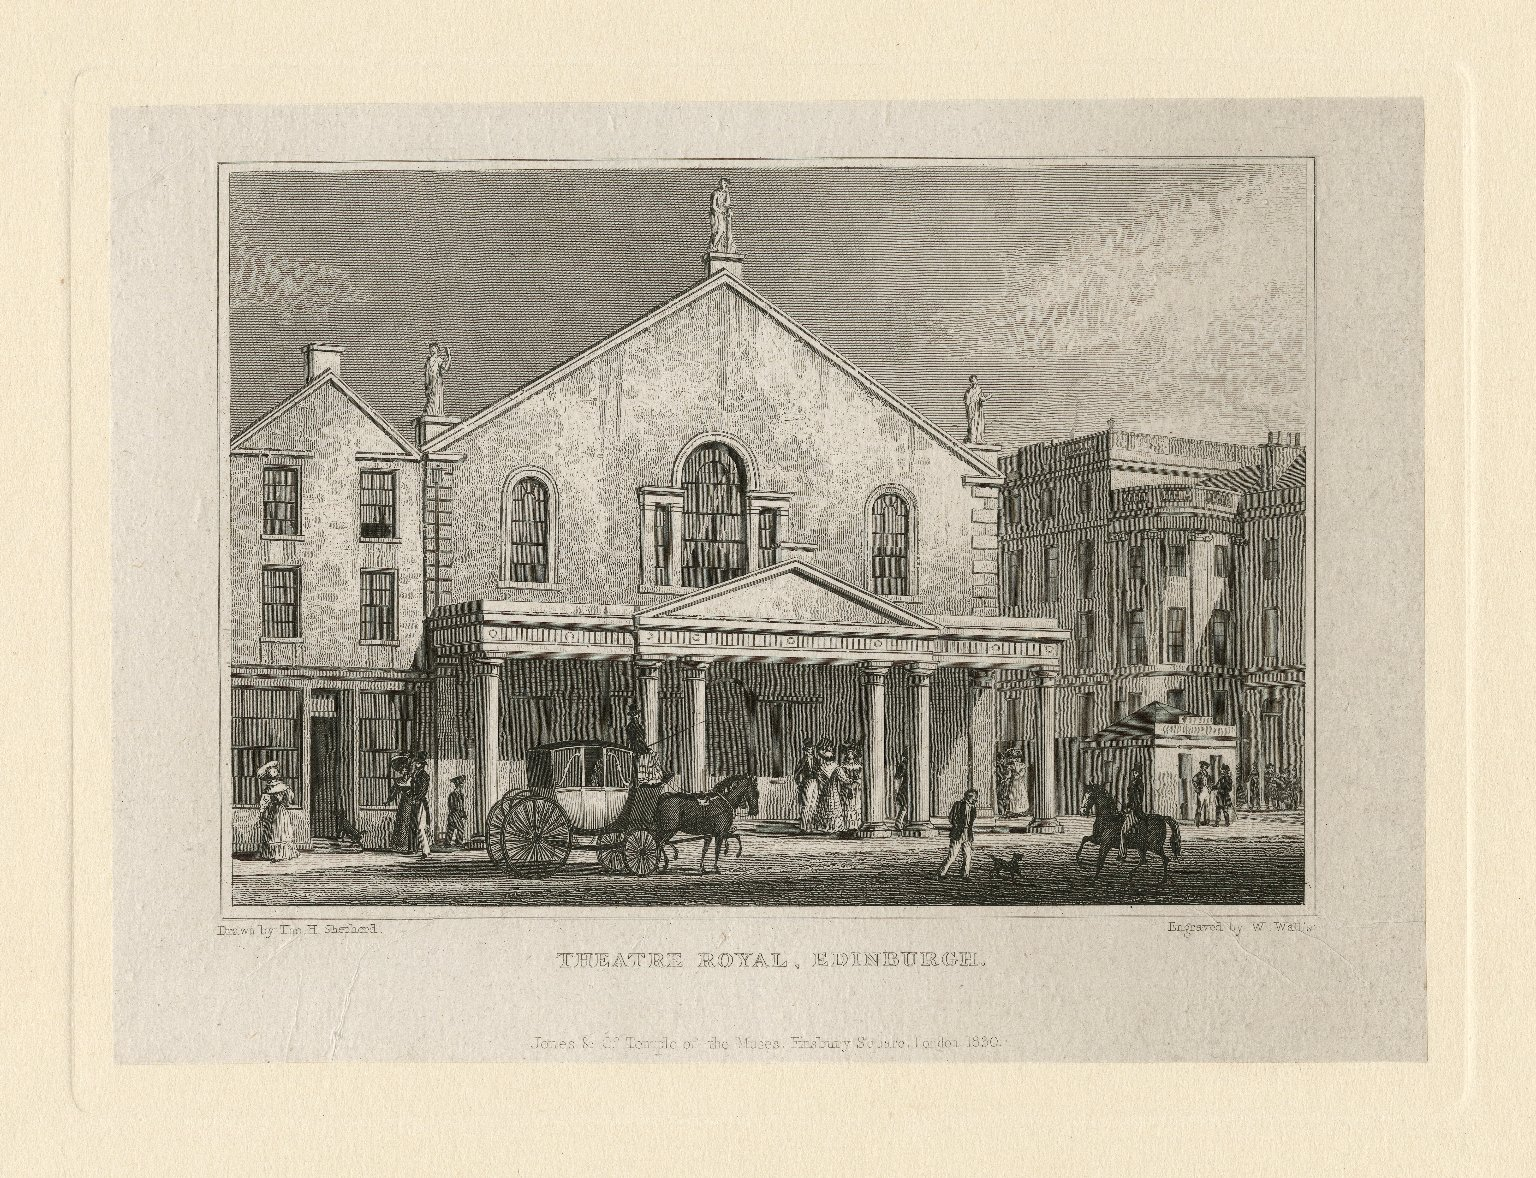 /media/Theatre Royal, Edinburg, 1830